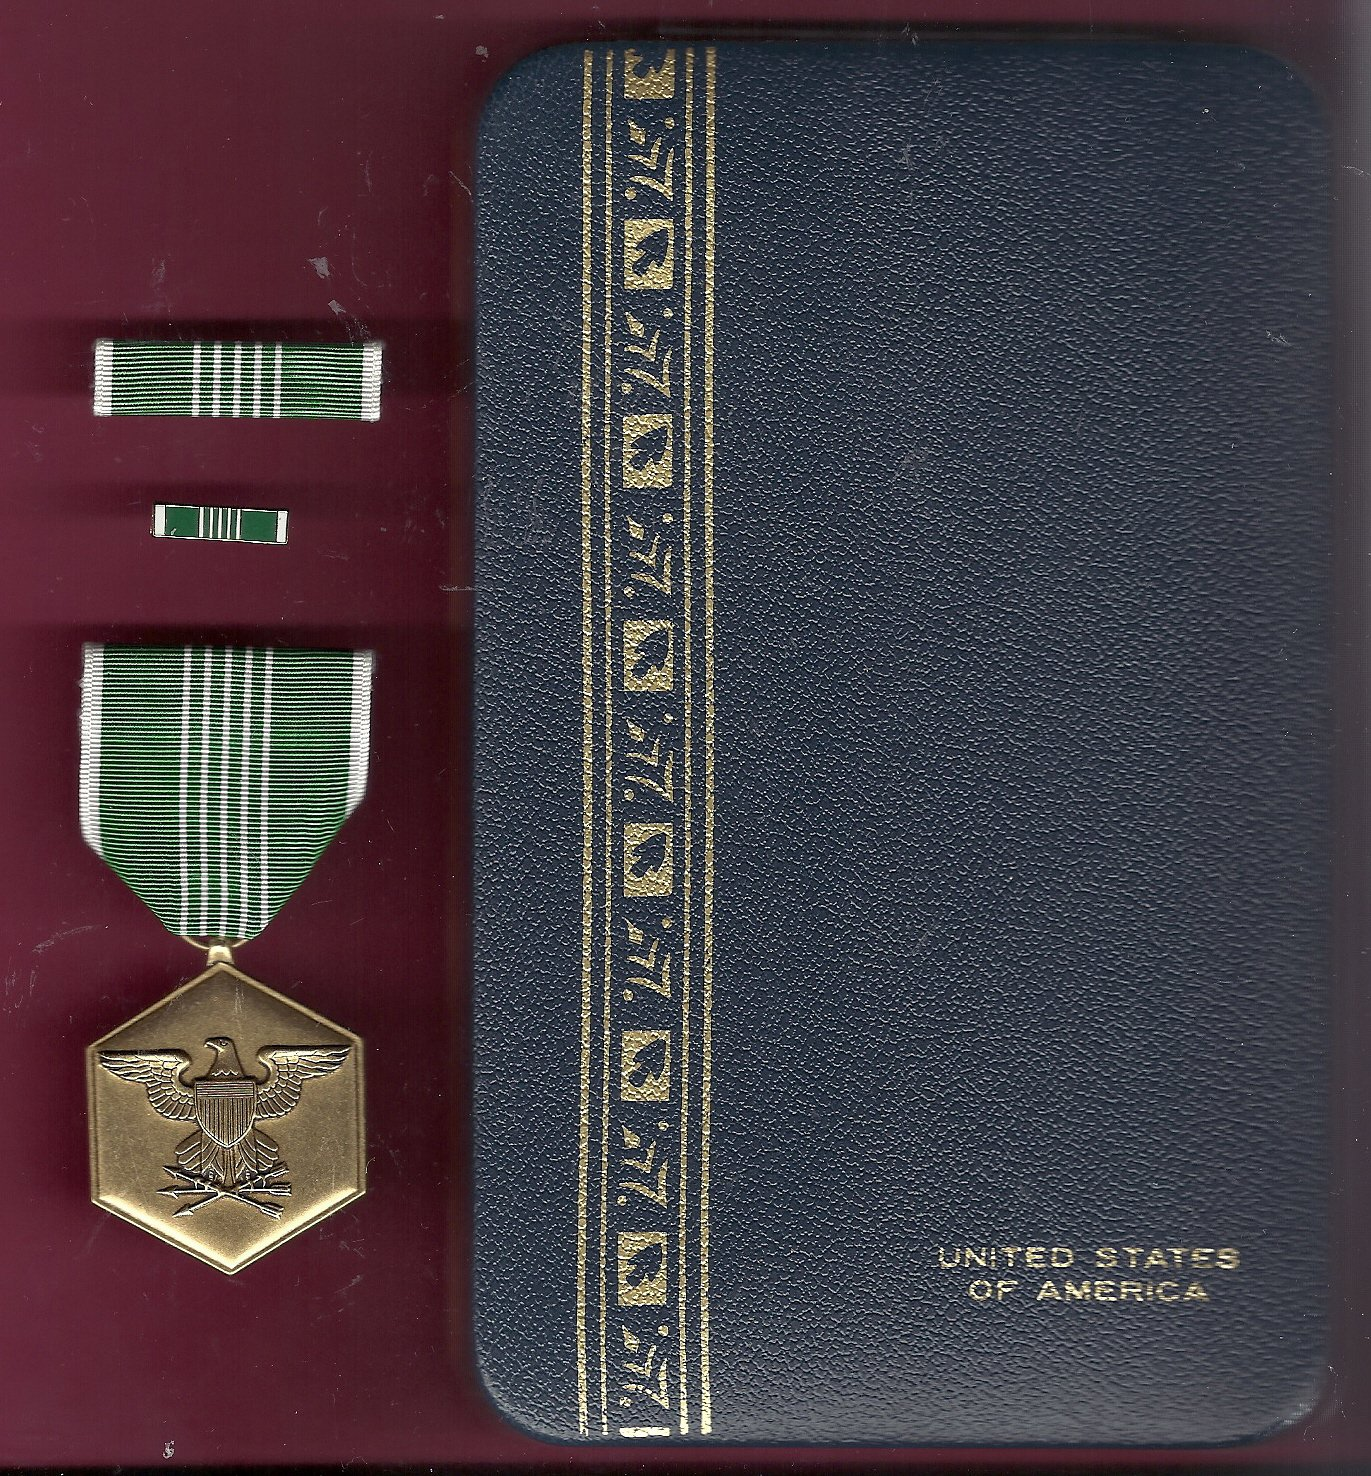 Army Commendation Award medal in case with ribbon bar and lapel pin